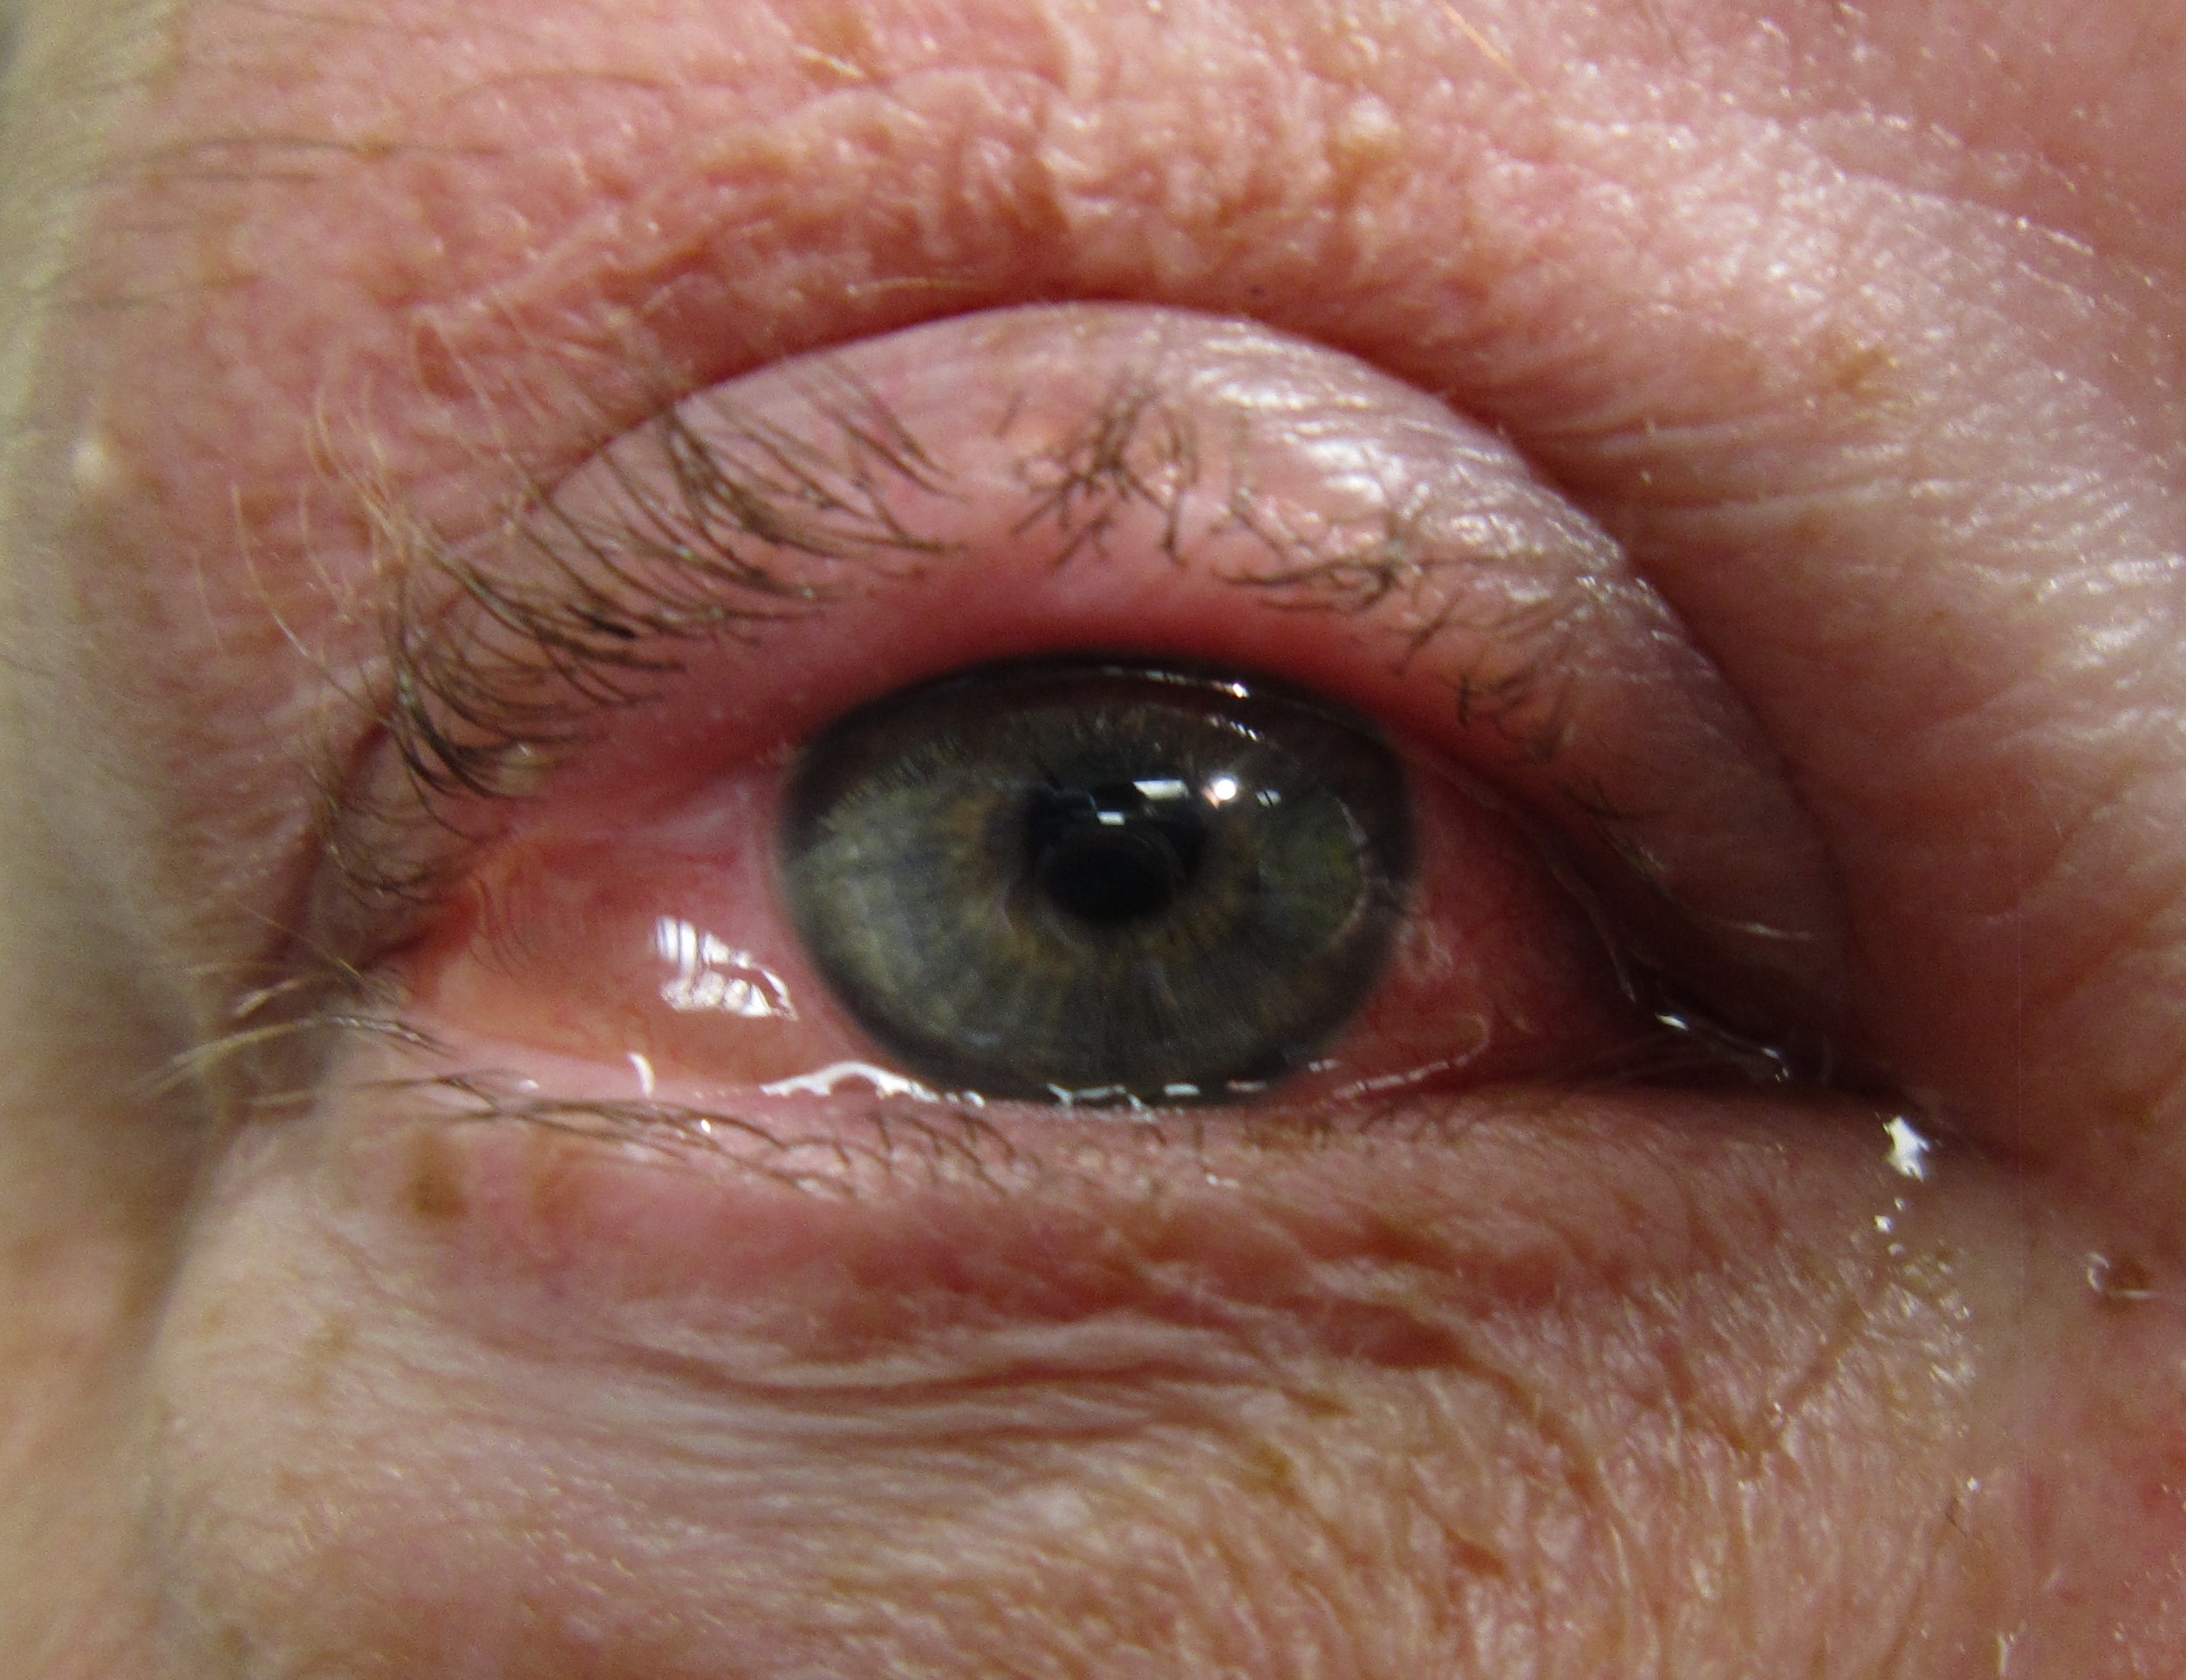 an eye with allergic conjuvitis